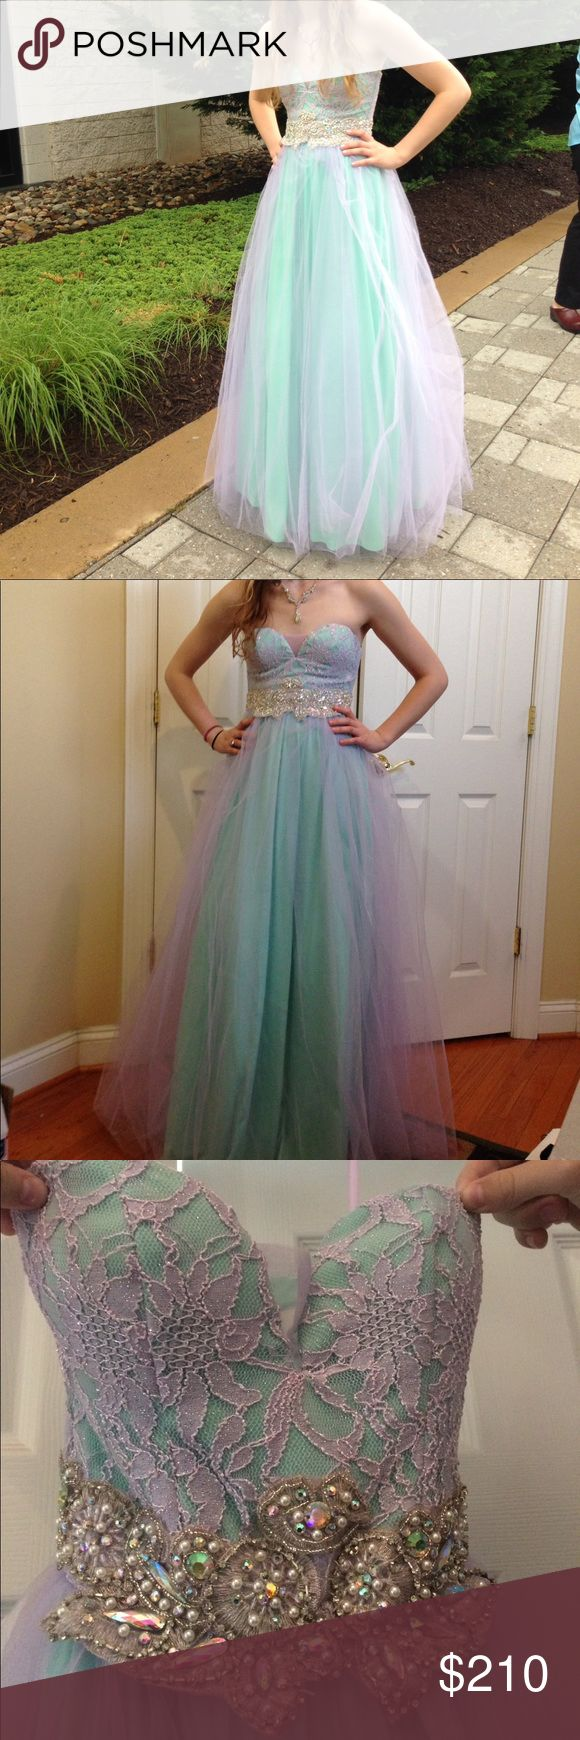 """Nordstrom Prom Quinceanera Dress Full Length Gown Worn once, dry cleaned immediately afterward. Tulle full skirt, has been hemmed. Gorgeous beading. Strapless, but has small hanger straps. Sea foam green base, purple tulle on top. Happy to answer any questions! I am 5""""4 and about 110lbs. and it fit perfectly!!! Pictures are of me actually wearing it at prom and trying it on. Nordstrom Dresses Prom"""